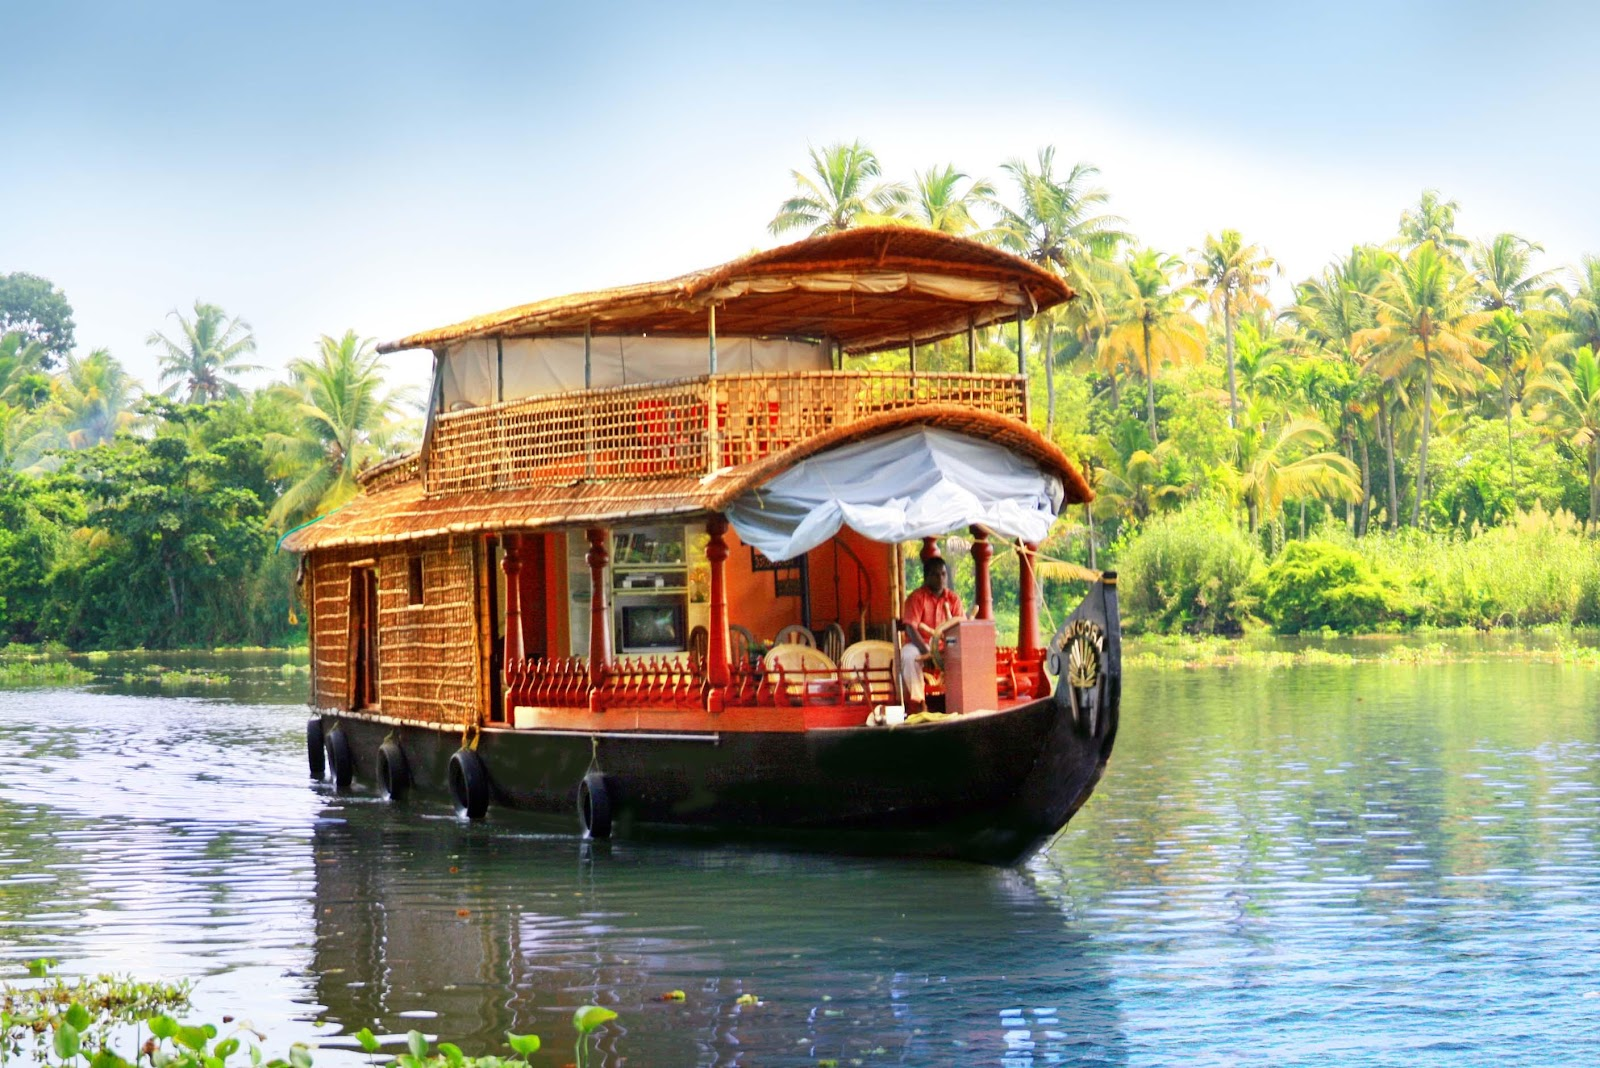 http://www.media4news.com/wp-content/uploads/2014/09/backwaters-in-Kerala.jpg